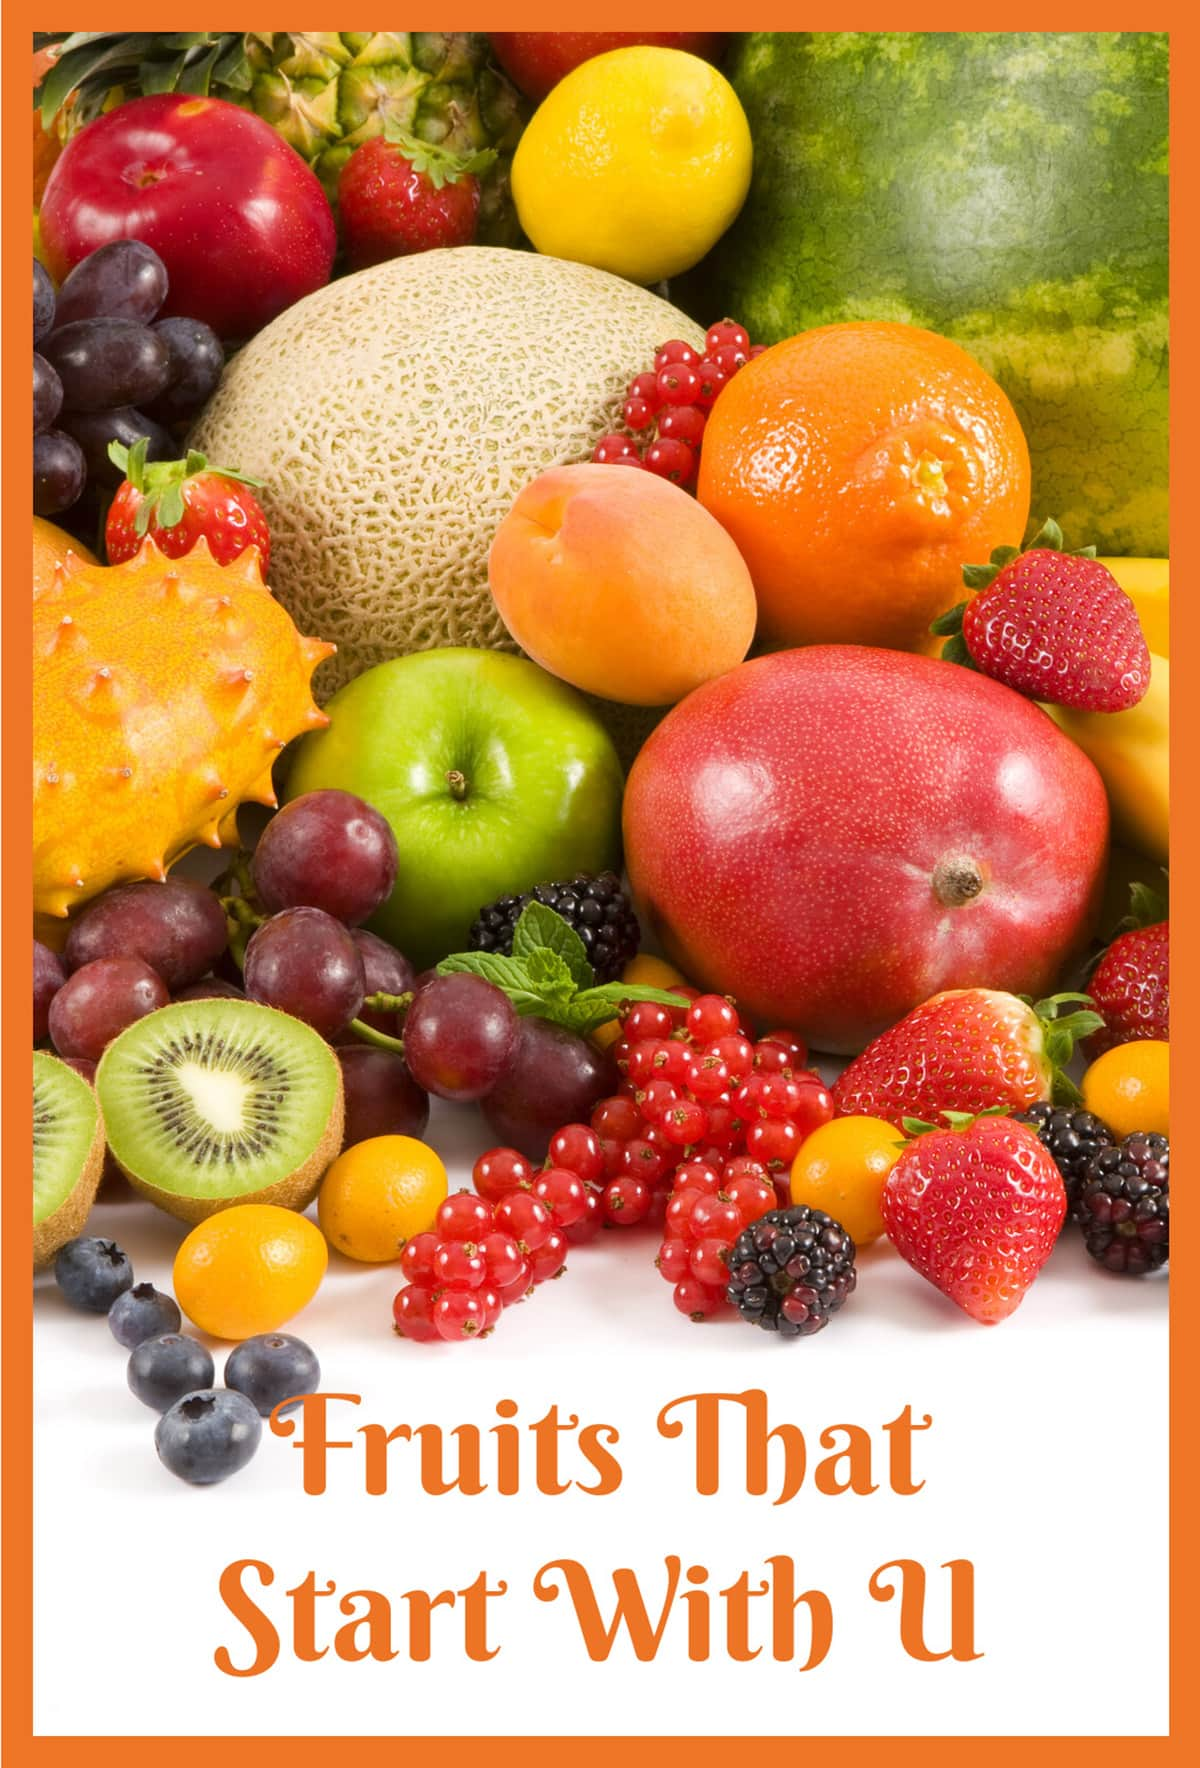 Fruits That Start With U